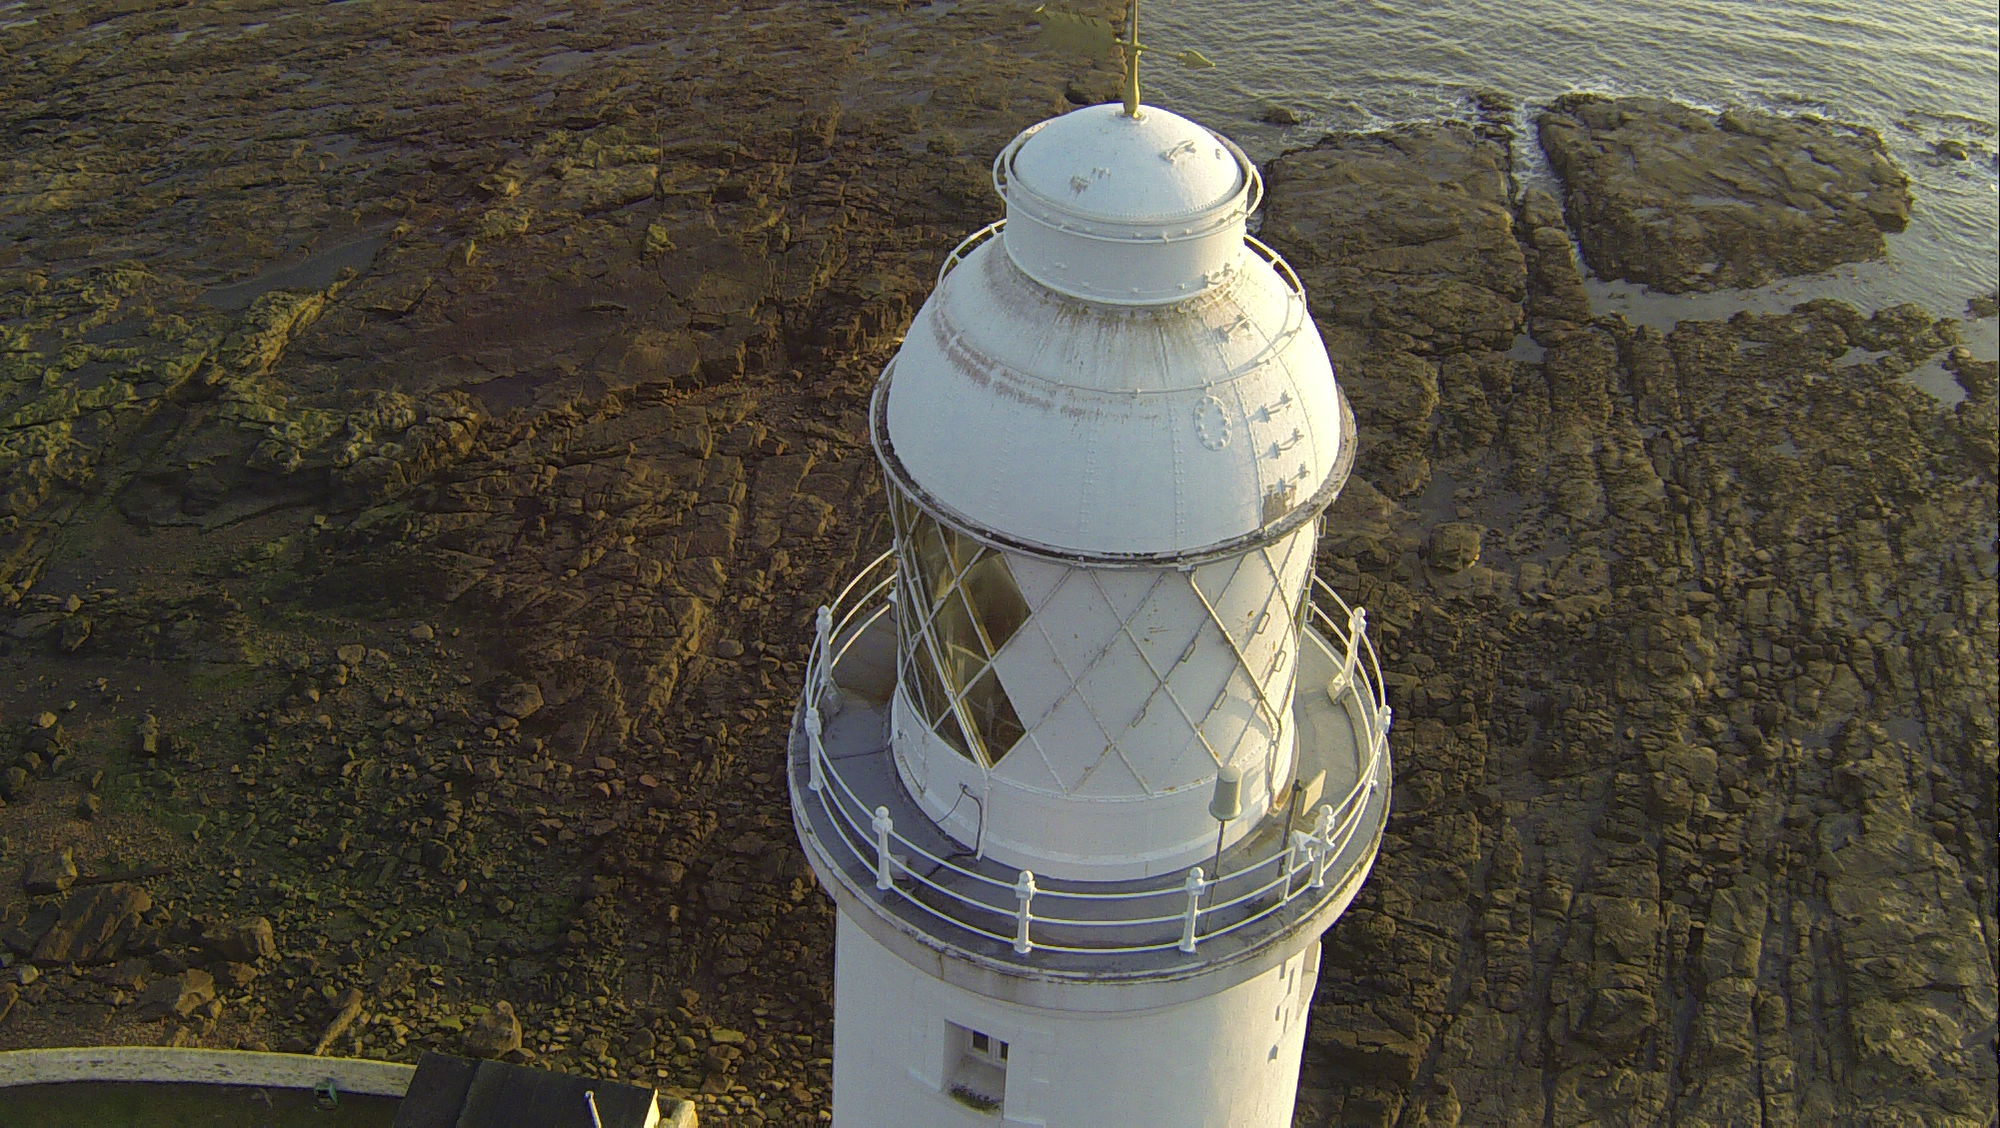 Lighthouse view from the top - Survey Drones